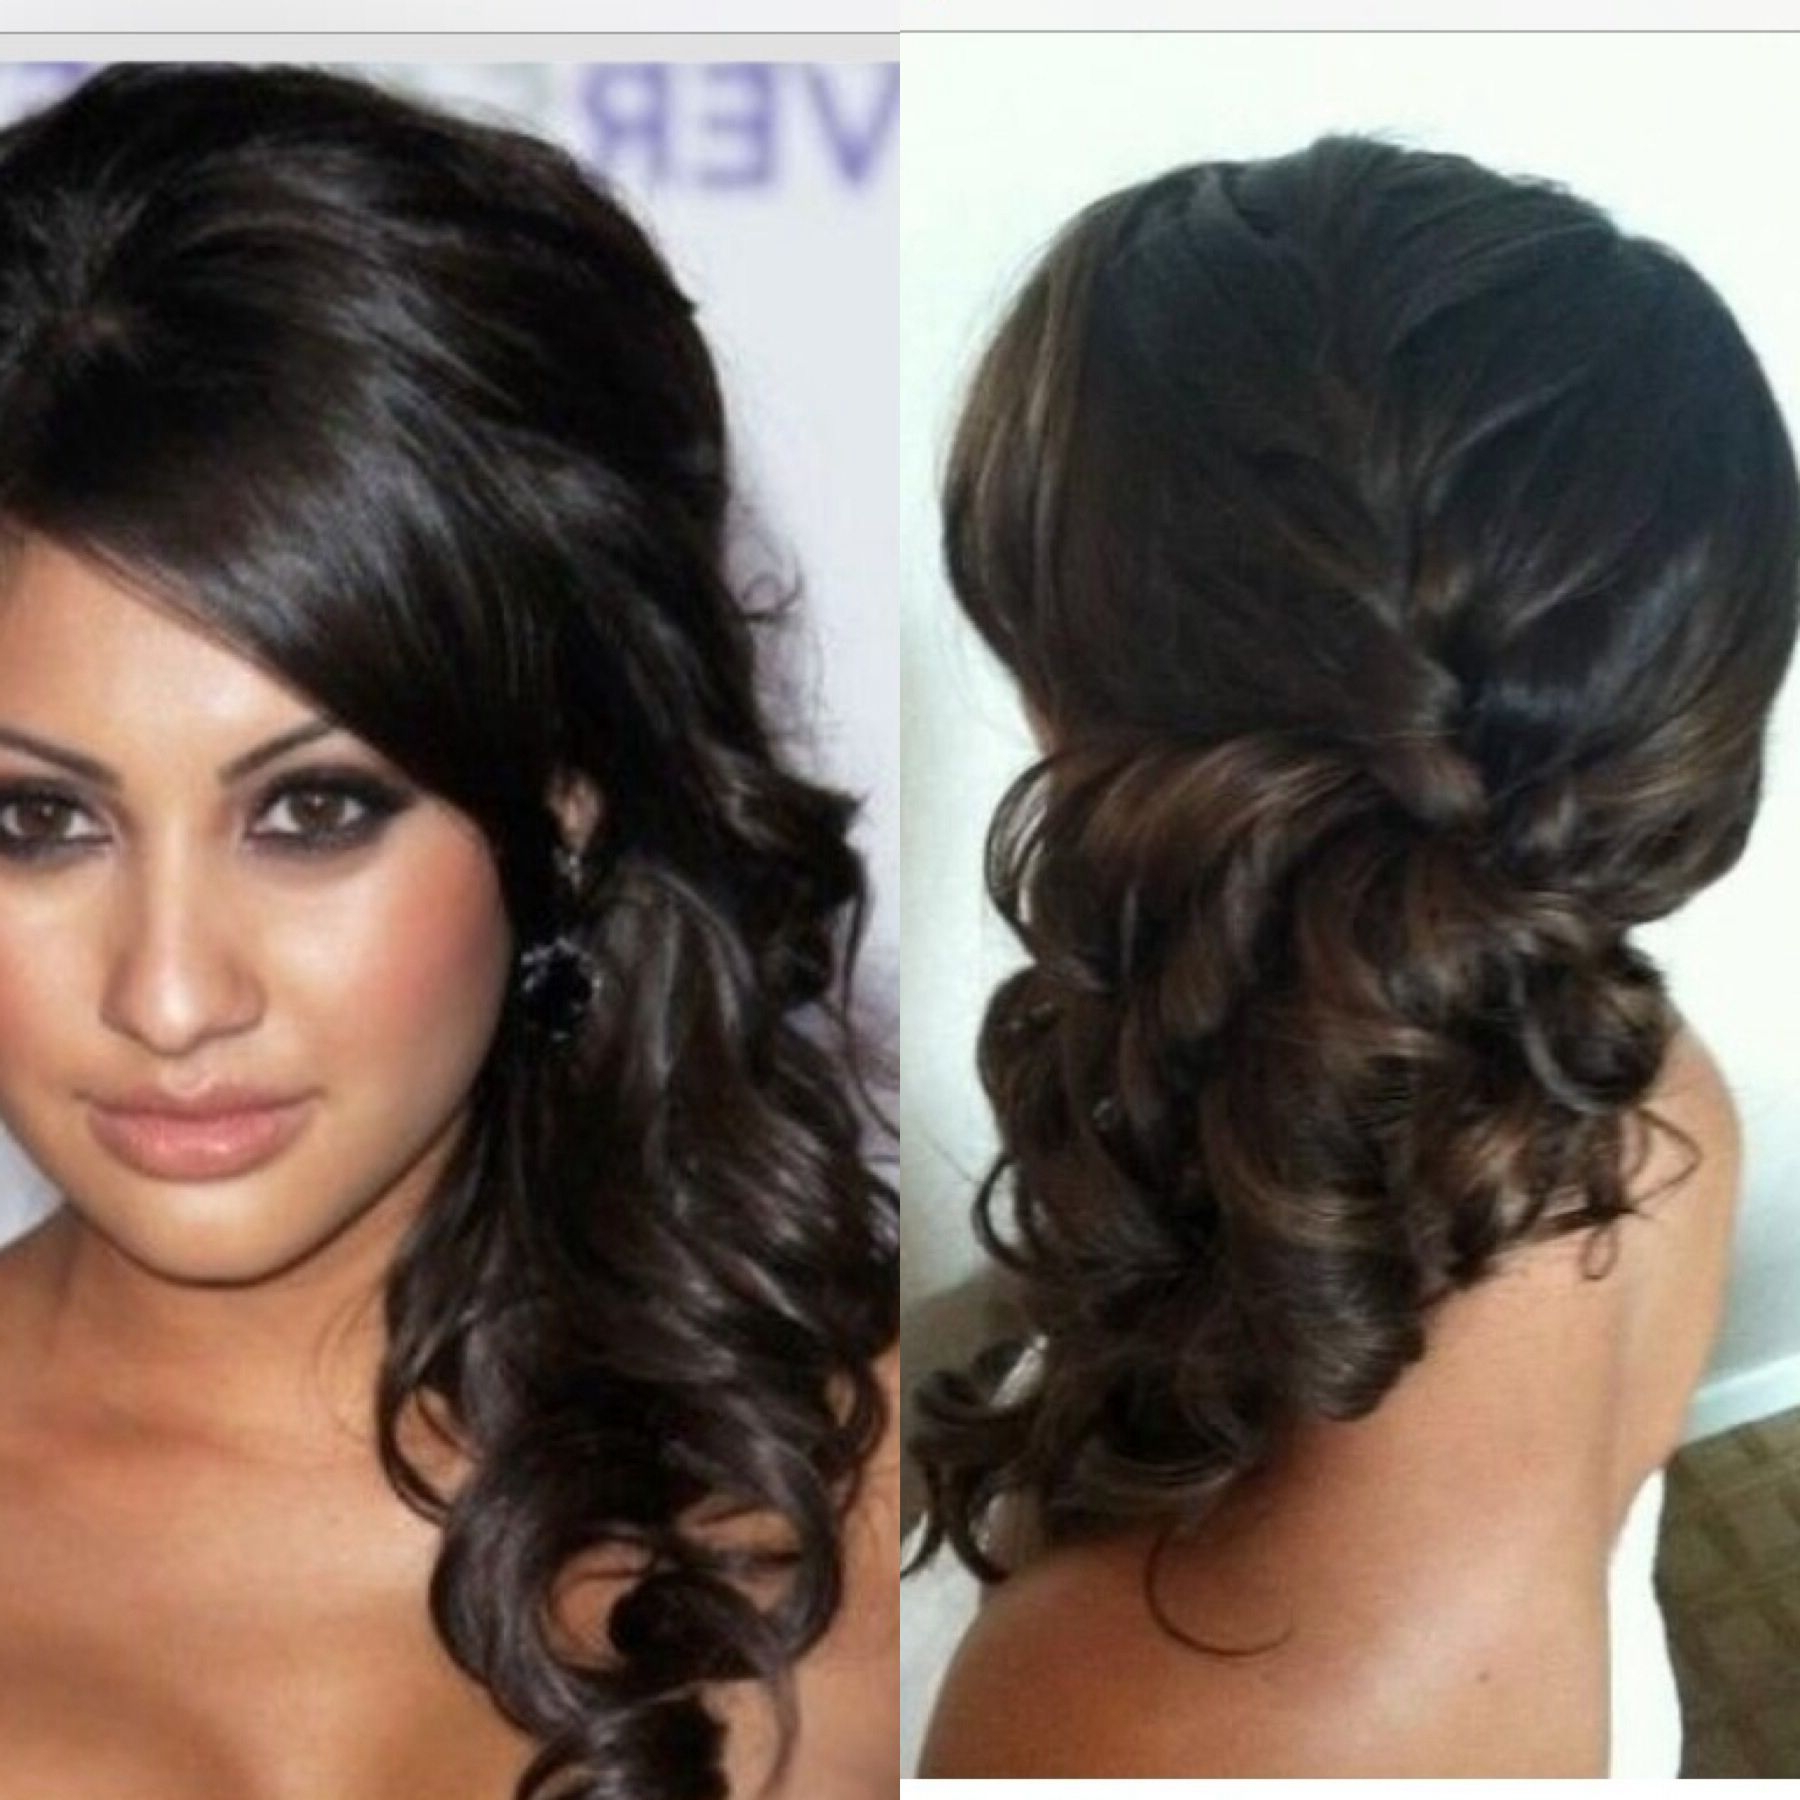 Preferred Side Lacy Braid Bridal Updos For Bridesmaid Hair. Up Do. Front And Back! Side Pony With Curls, French (Gallery 18 of 20)